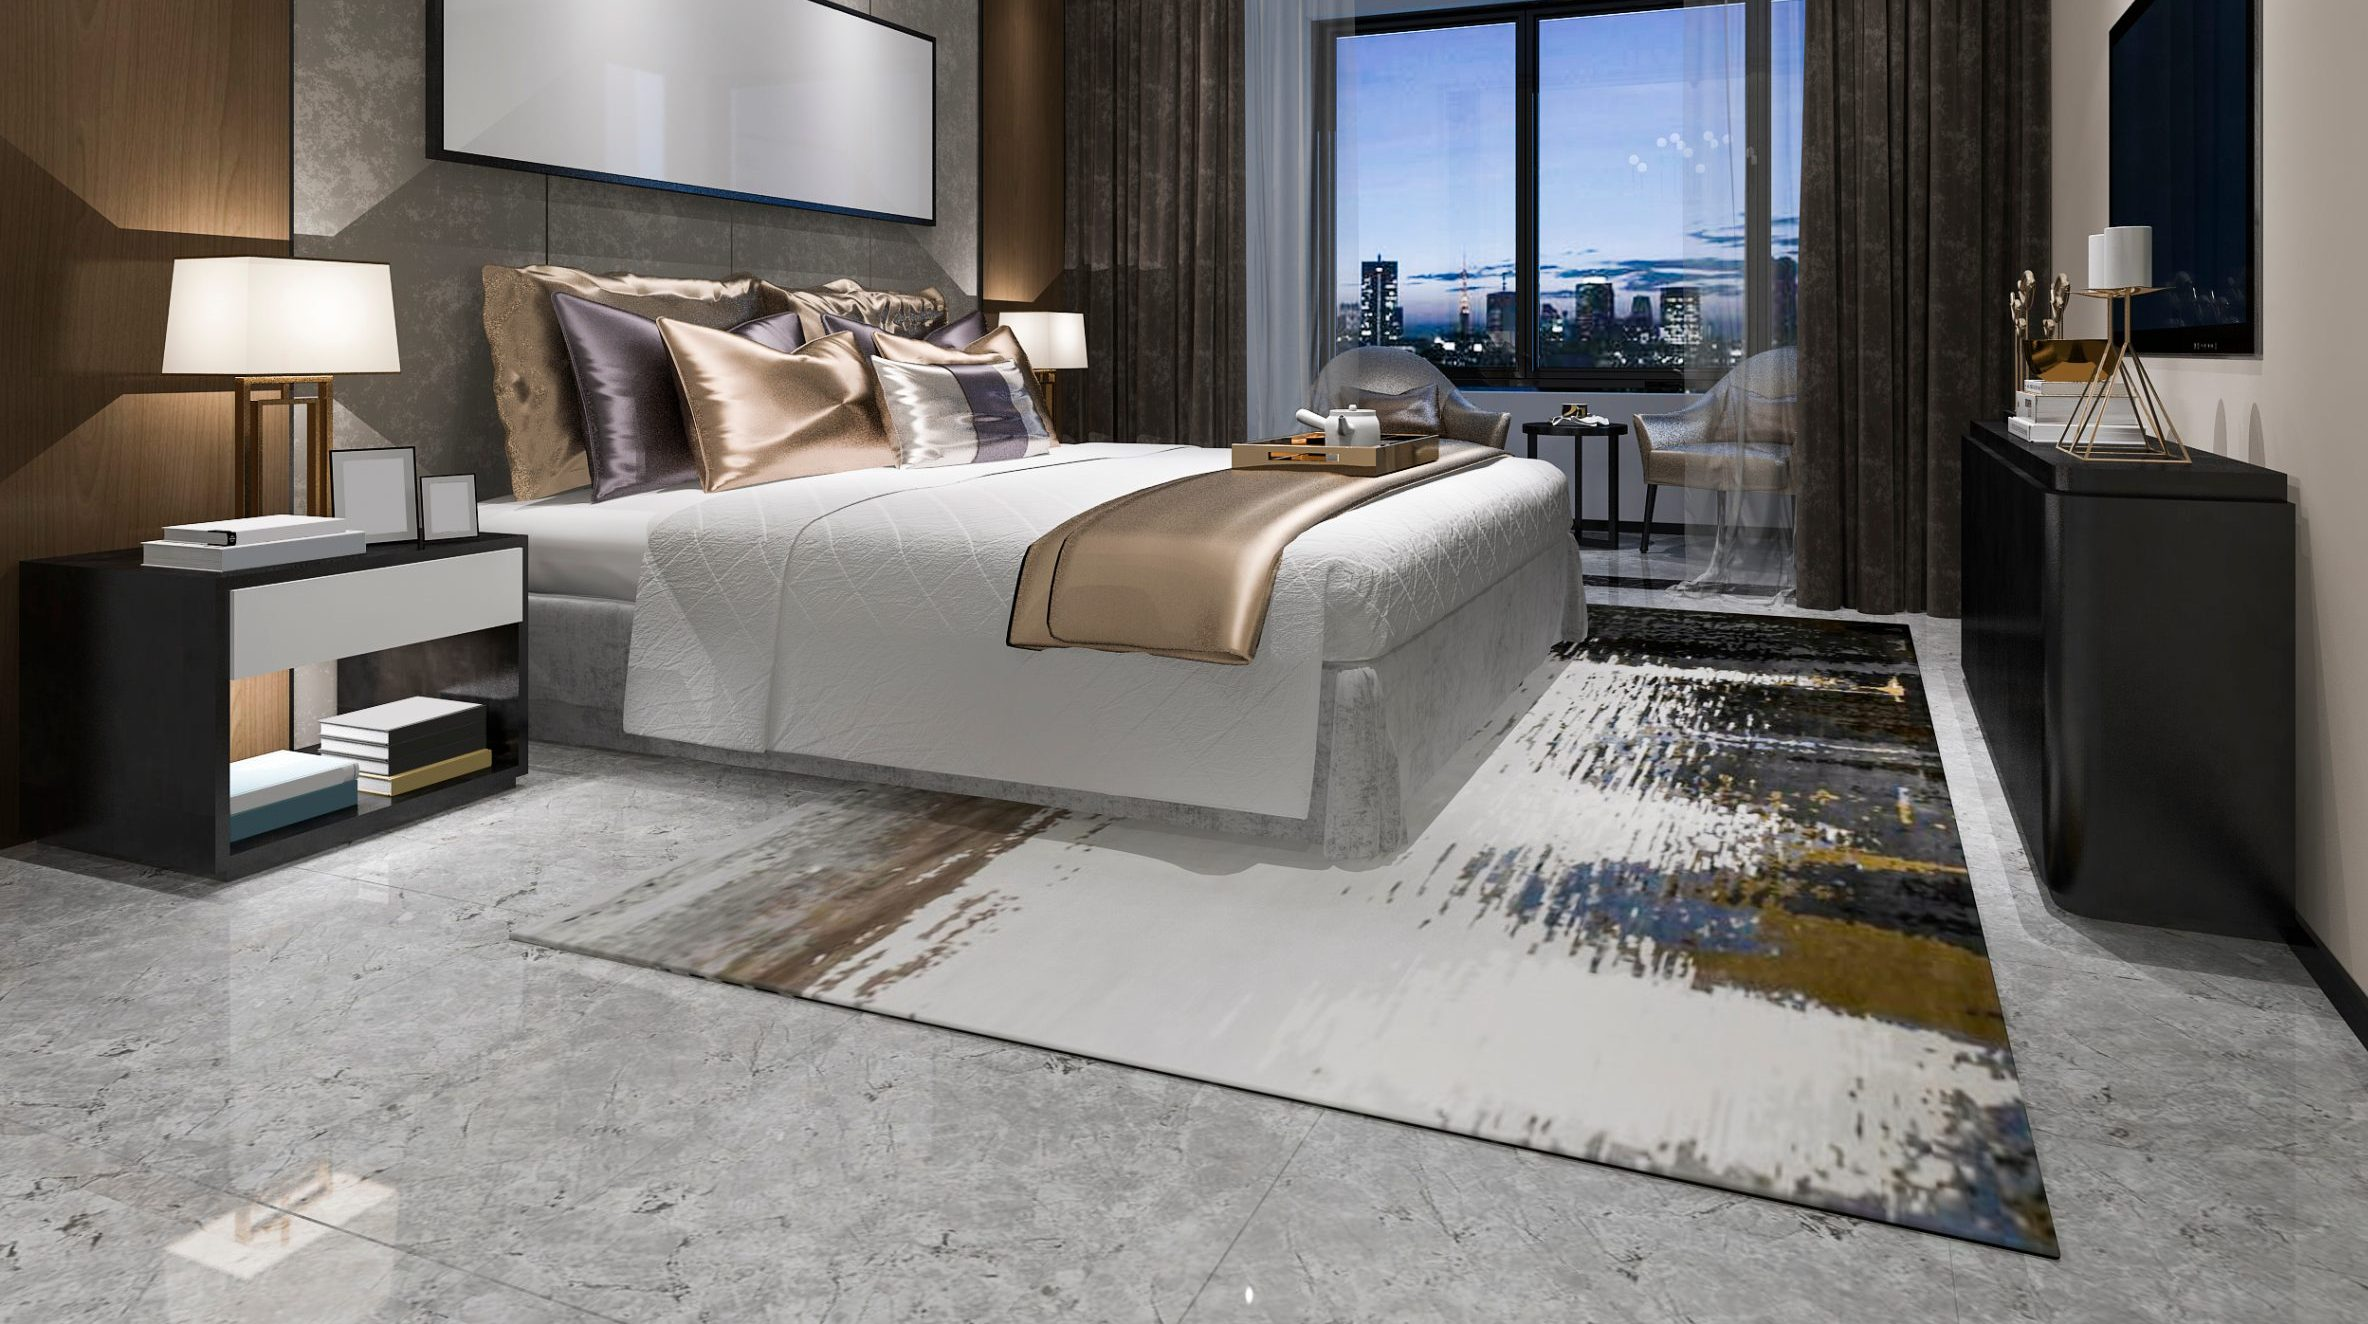 A luxurious hotel bedroom